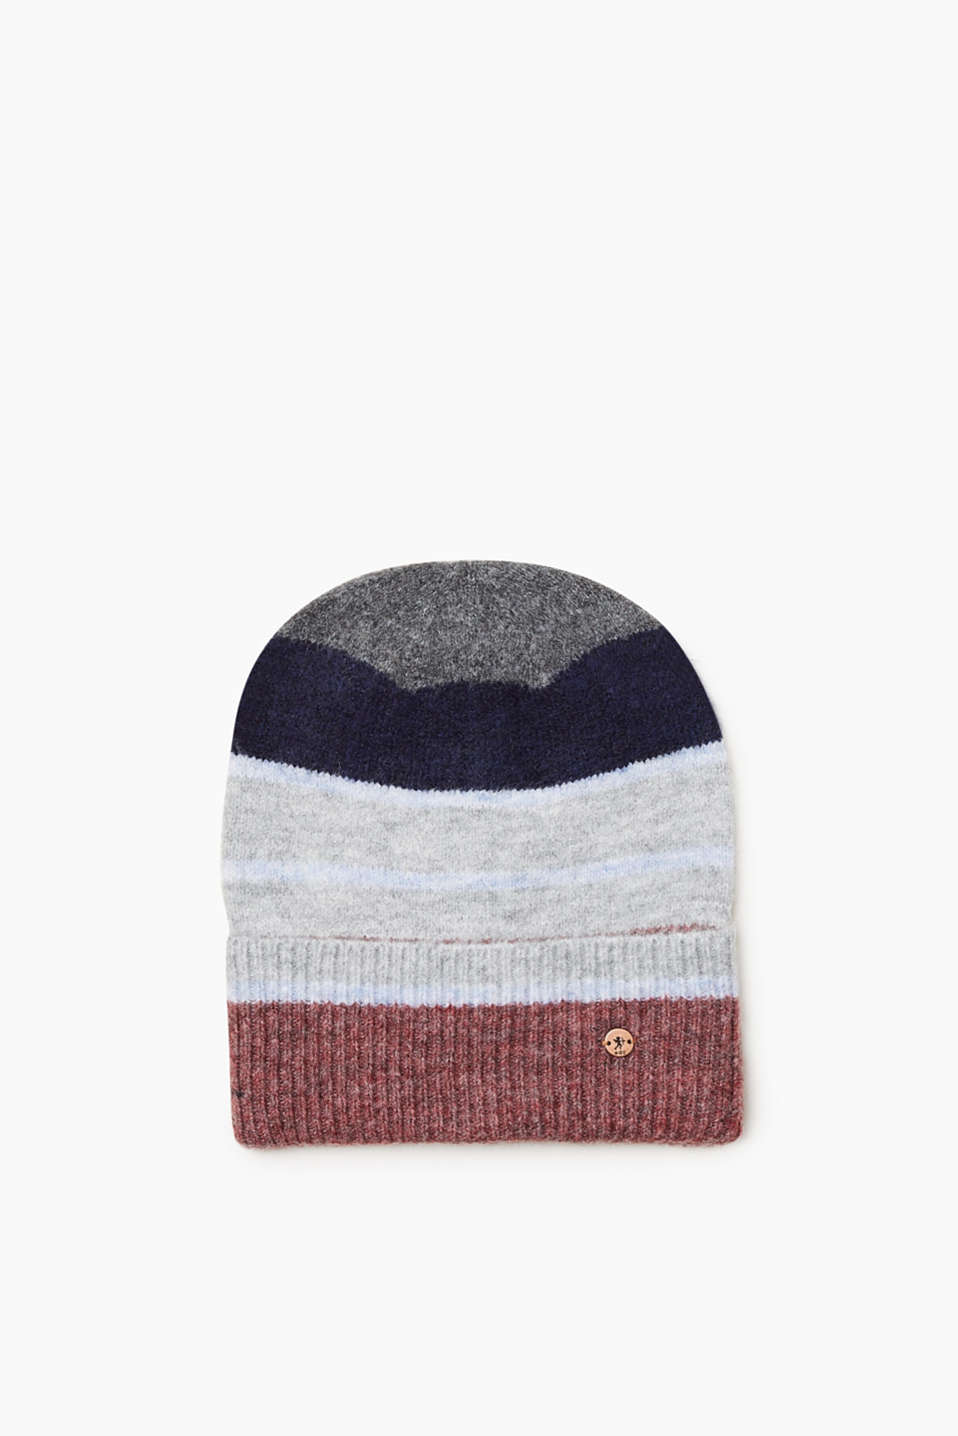 We love knitwear! This beanie stands out with